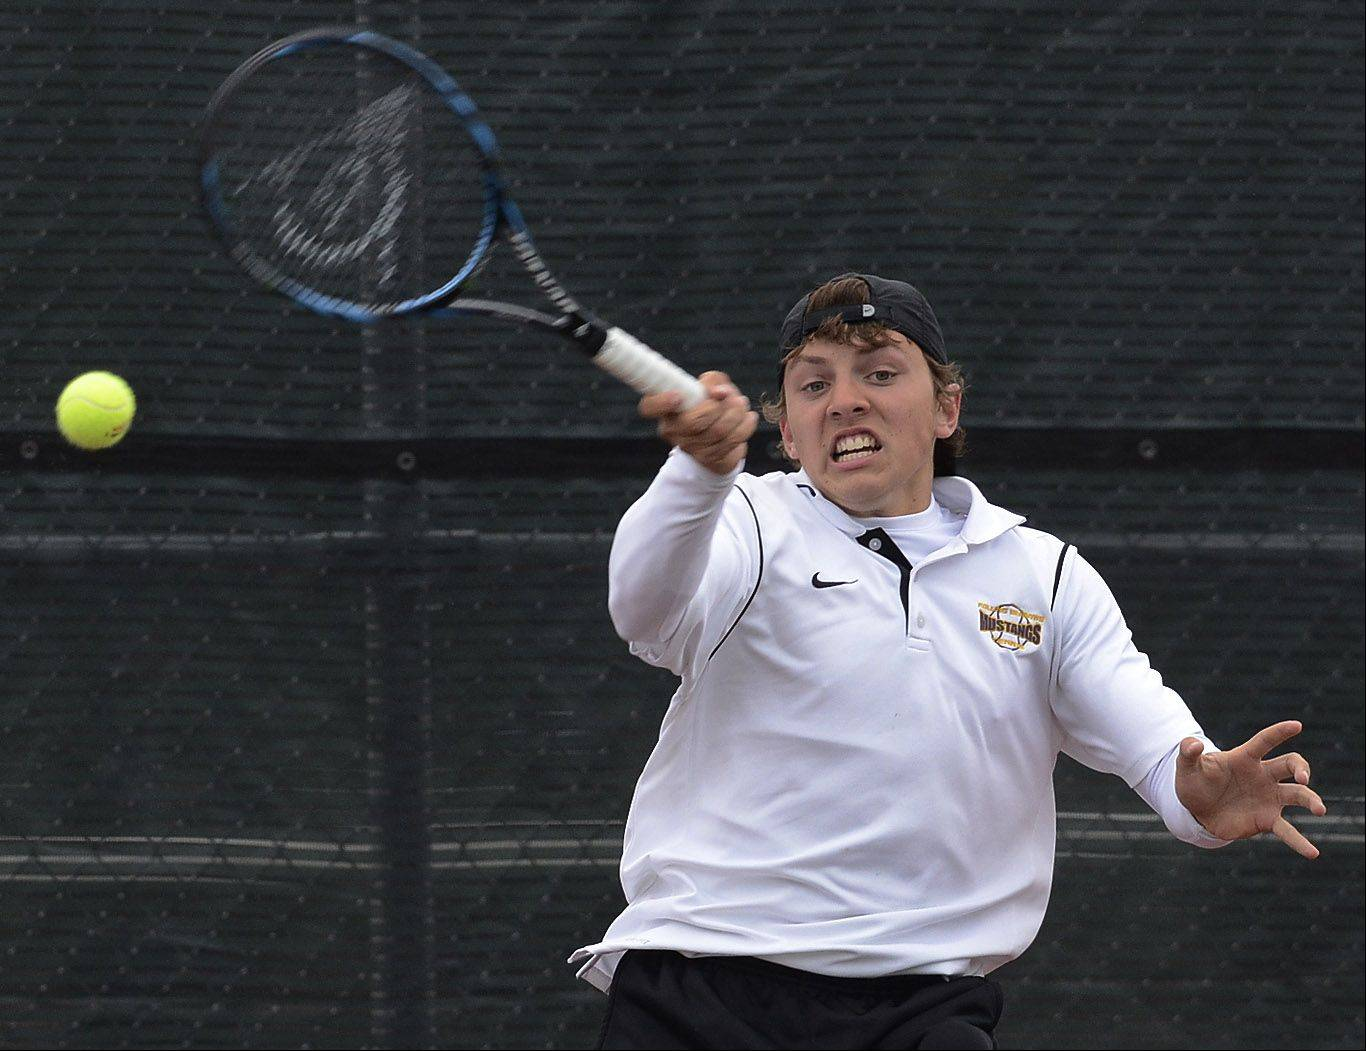 Mack Galvin of Rolling Meadows competes during his first-round match Thursday at Rolling Meadows.